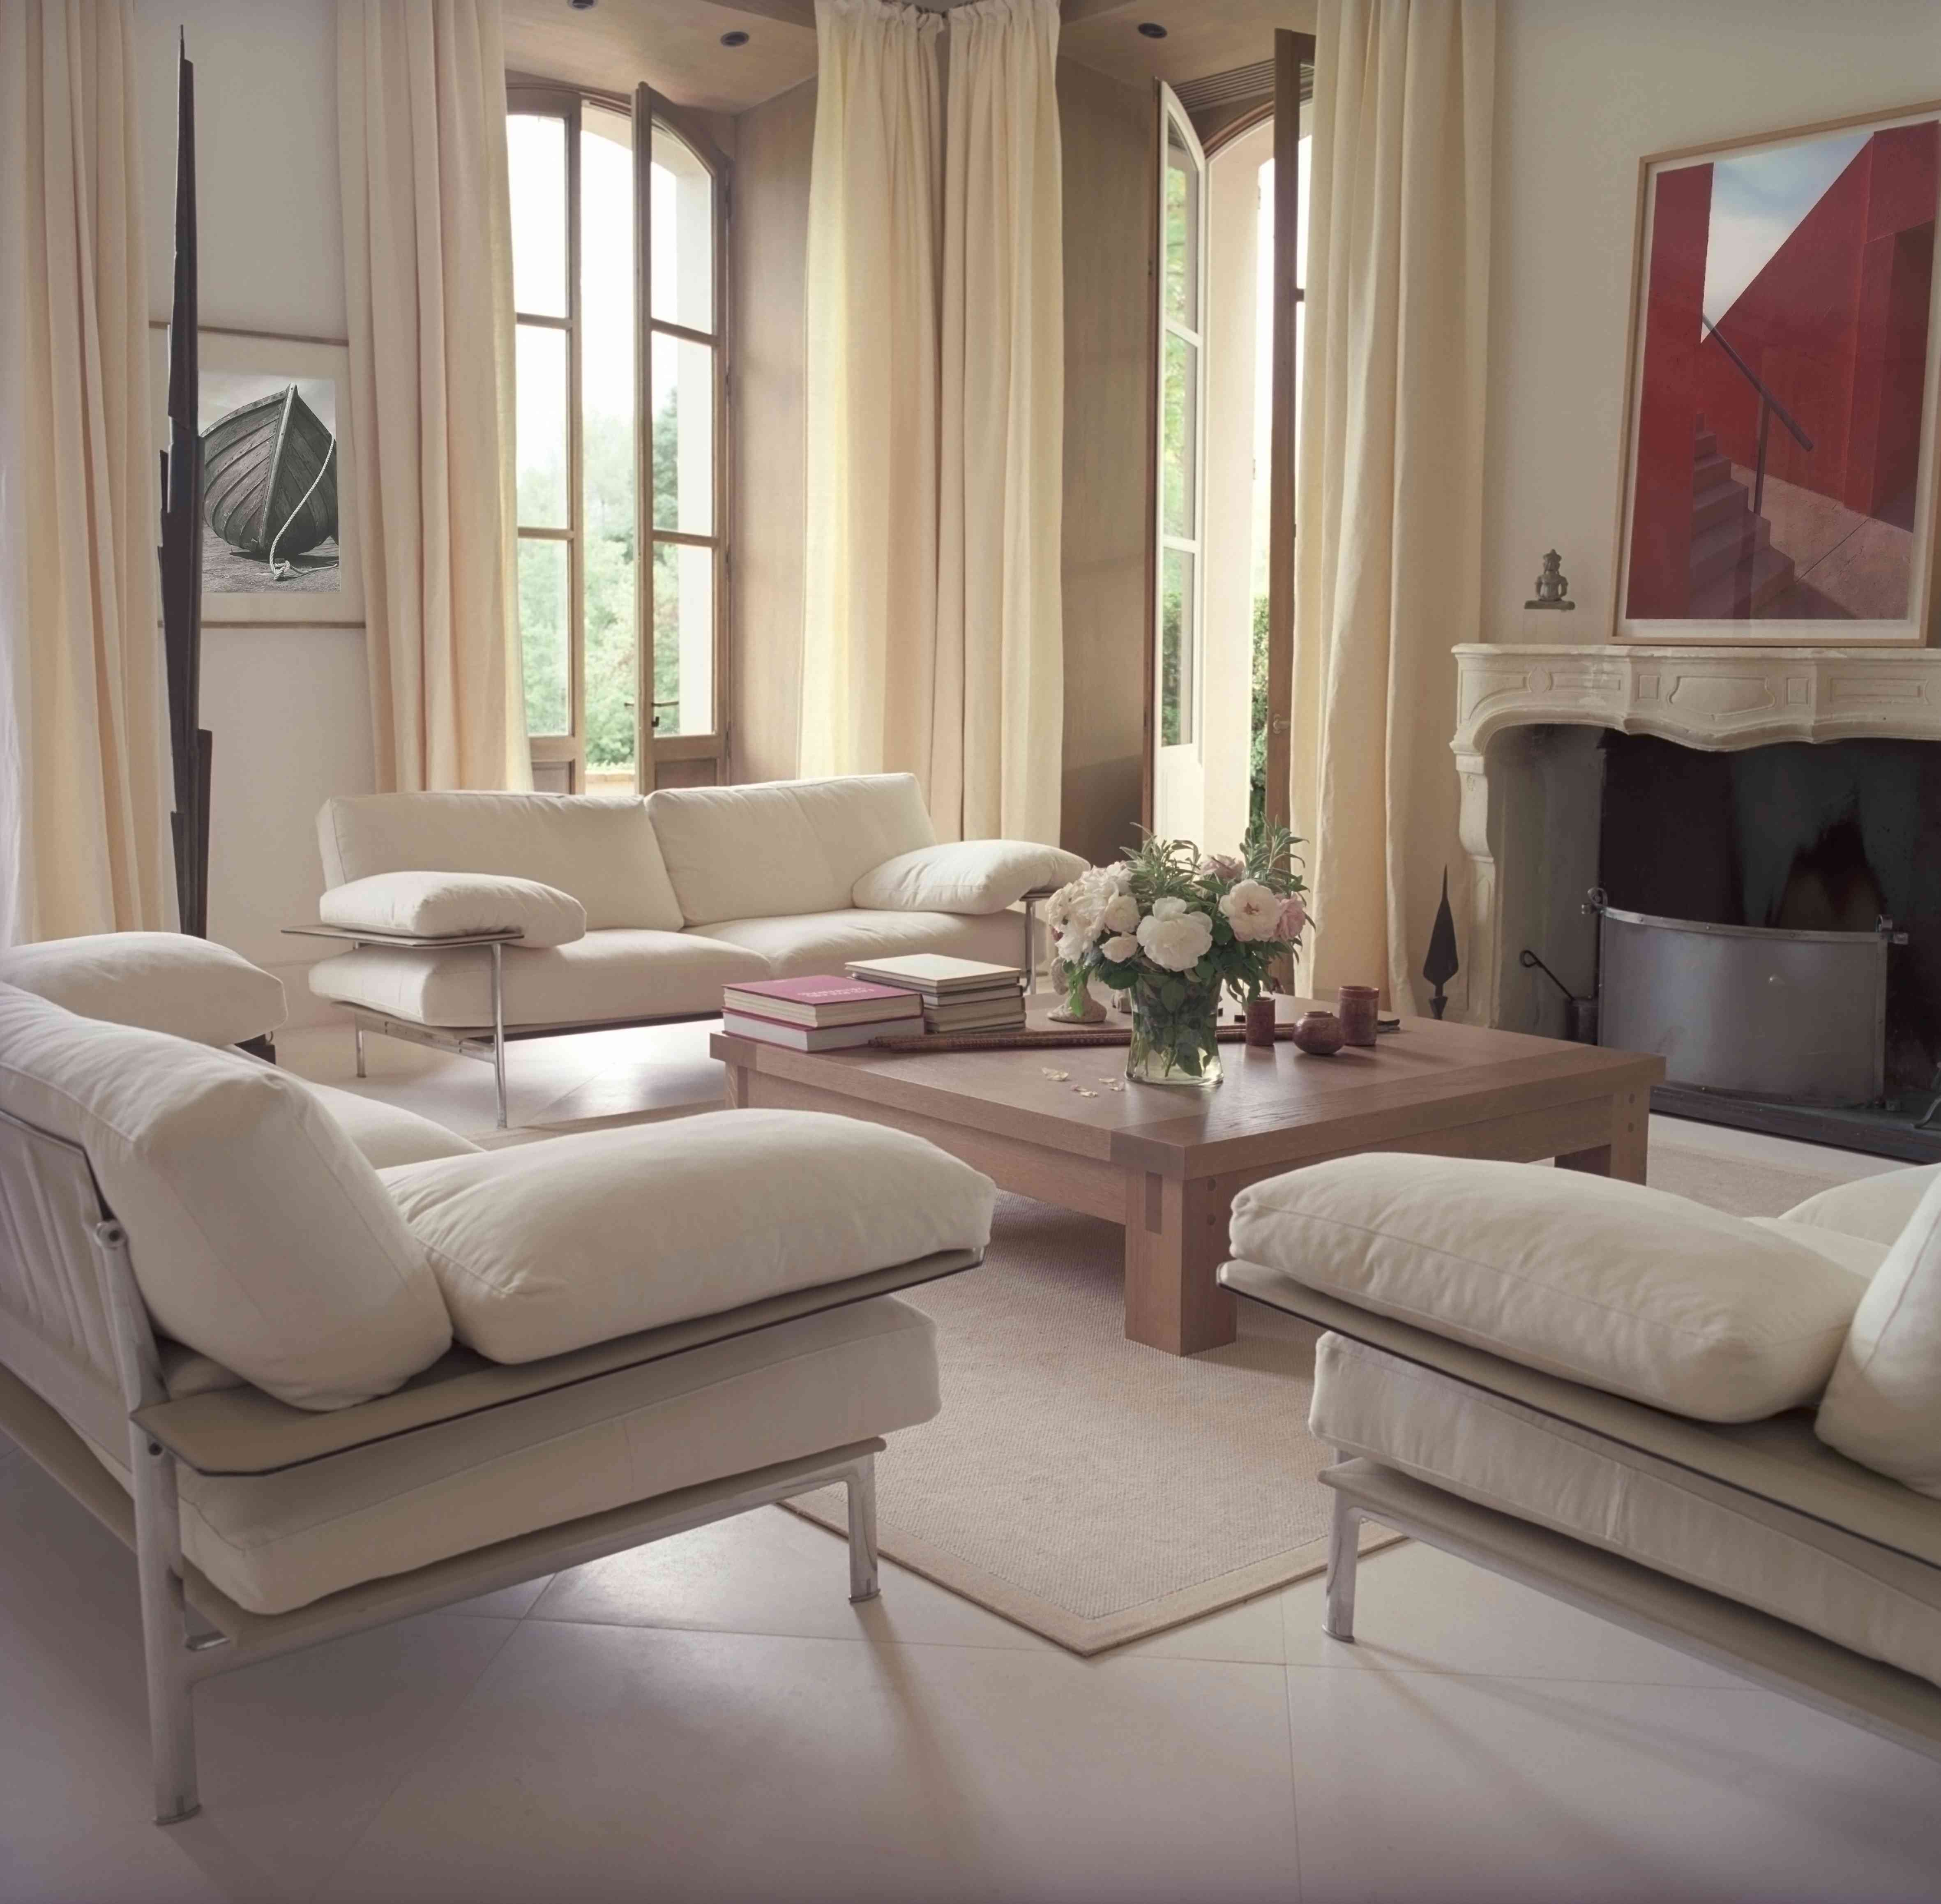 French country chateau living room.